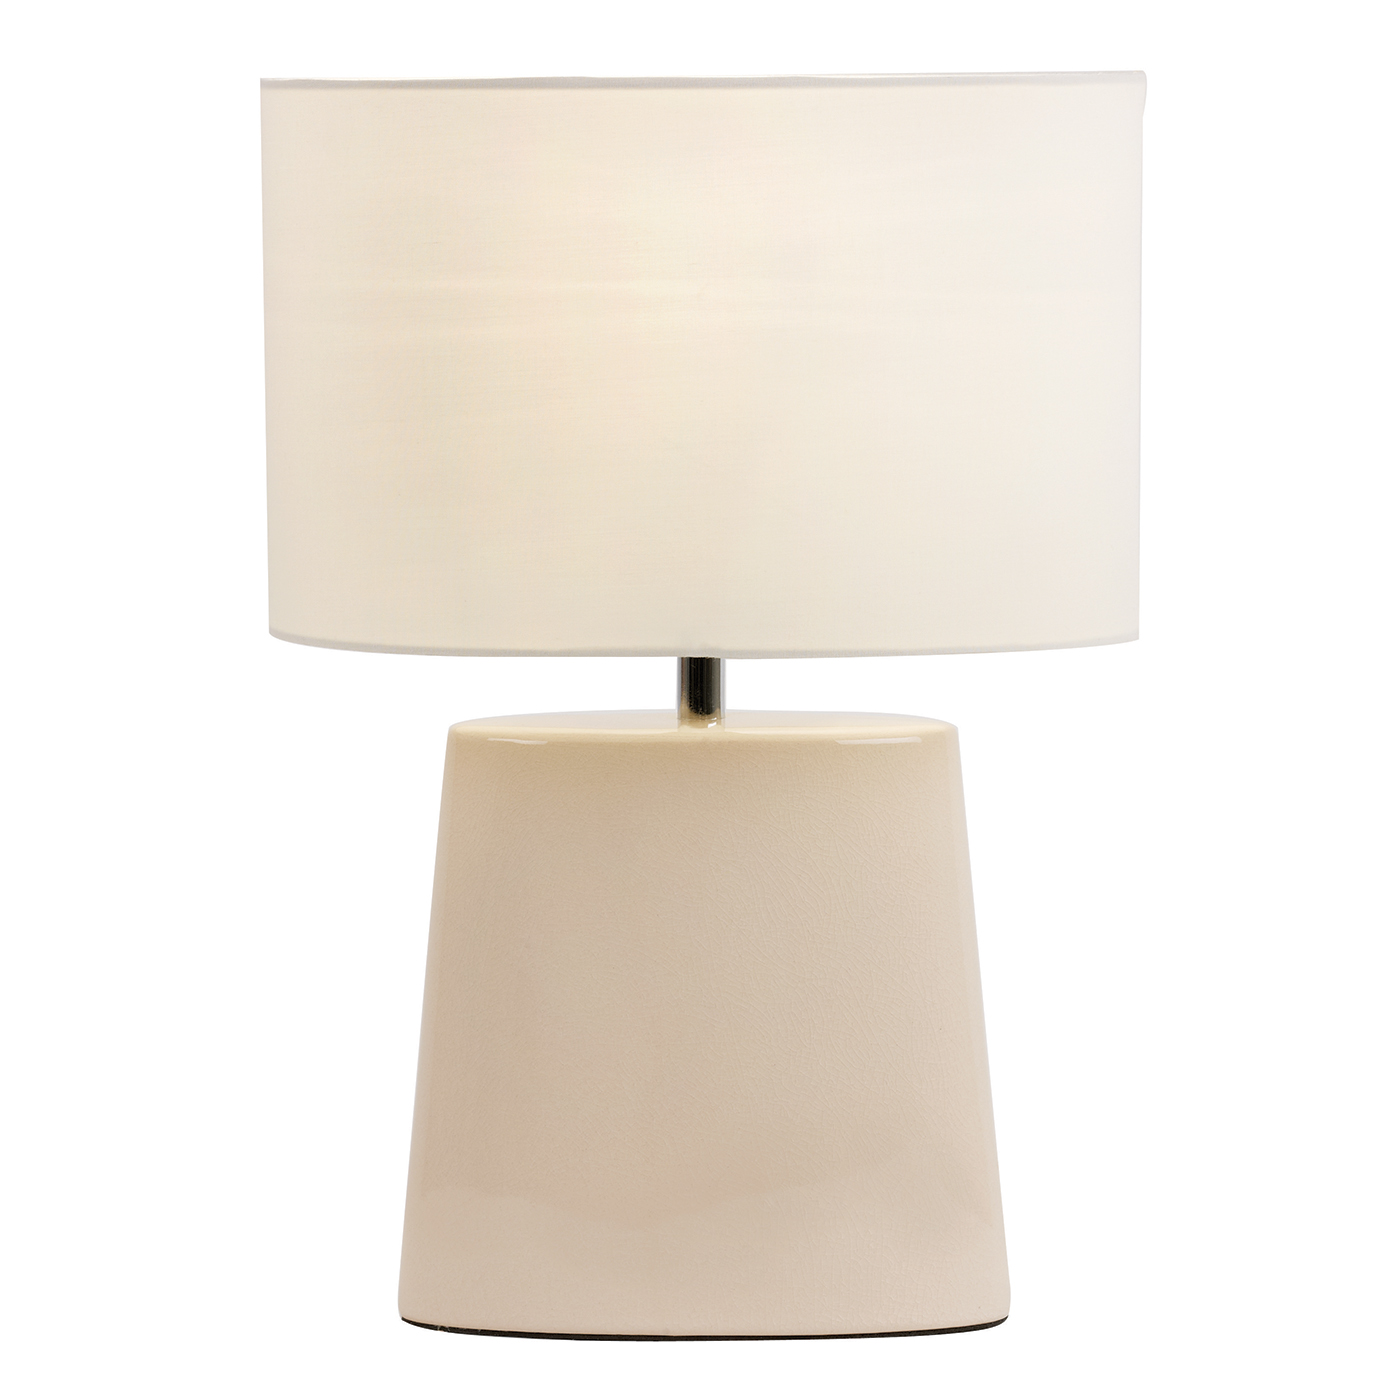 Endon Iris table lamp 60W Cream crackle glaze & cream tc fabric Thumbnail 1